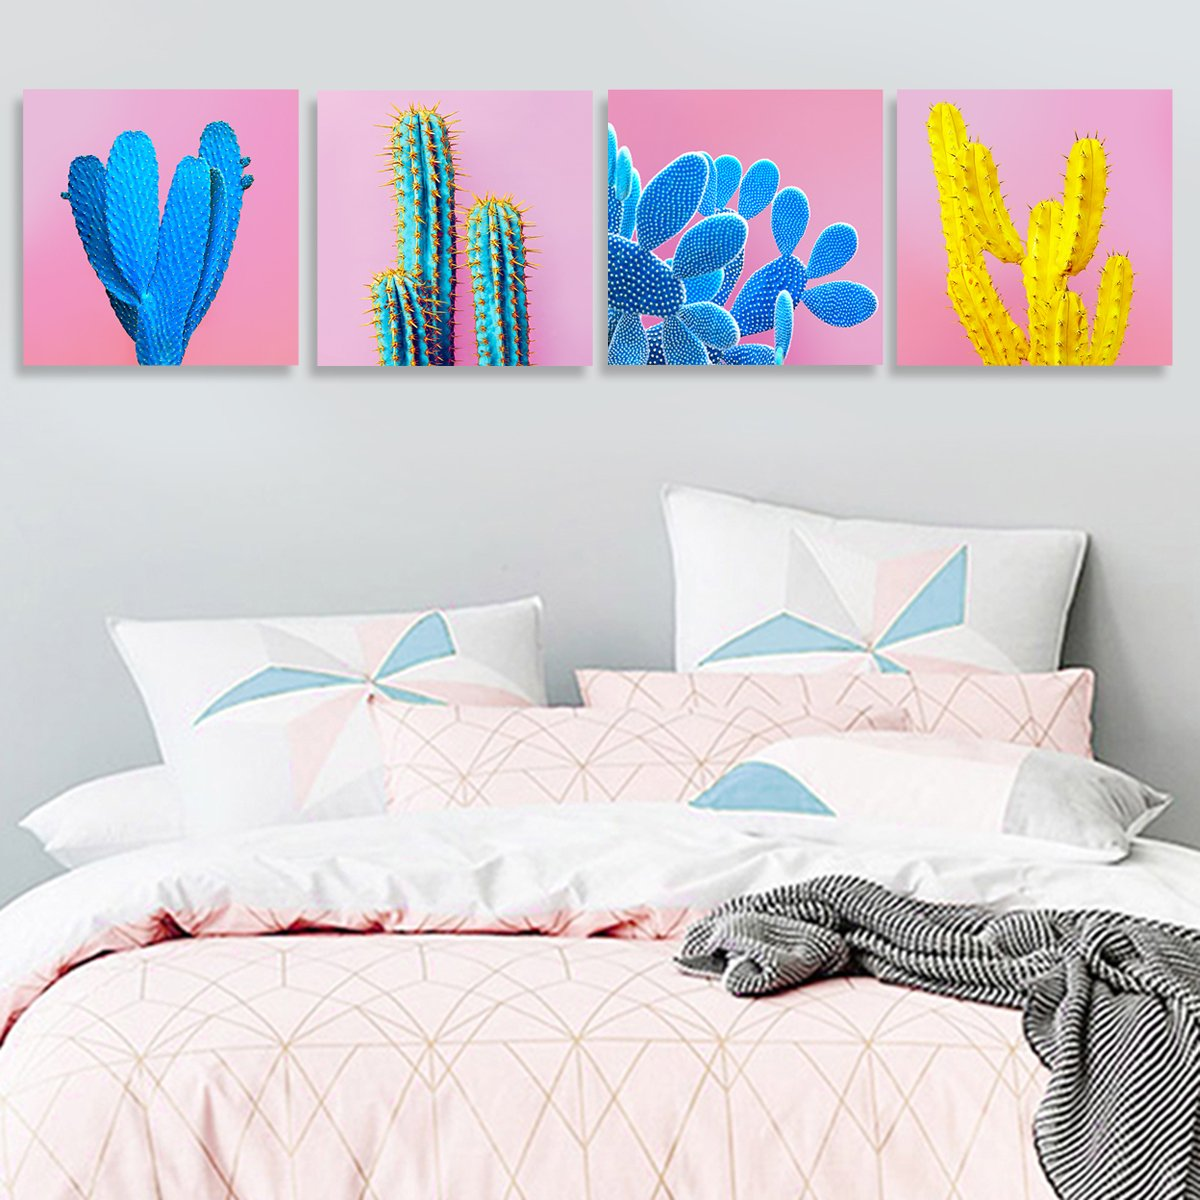 Cactus Decor Home Decorations Wall Art For Living Room Framed Pictures Canvas Prints Colorful Pop Fashion Tropical Desert Plant Girl Pink Blue Modern Contemporary Artwork Set of 4 Piece 12 12 x4